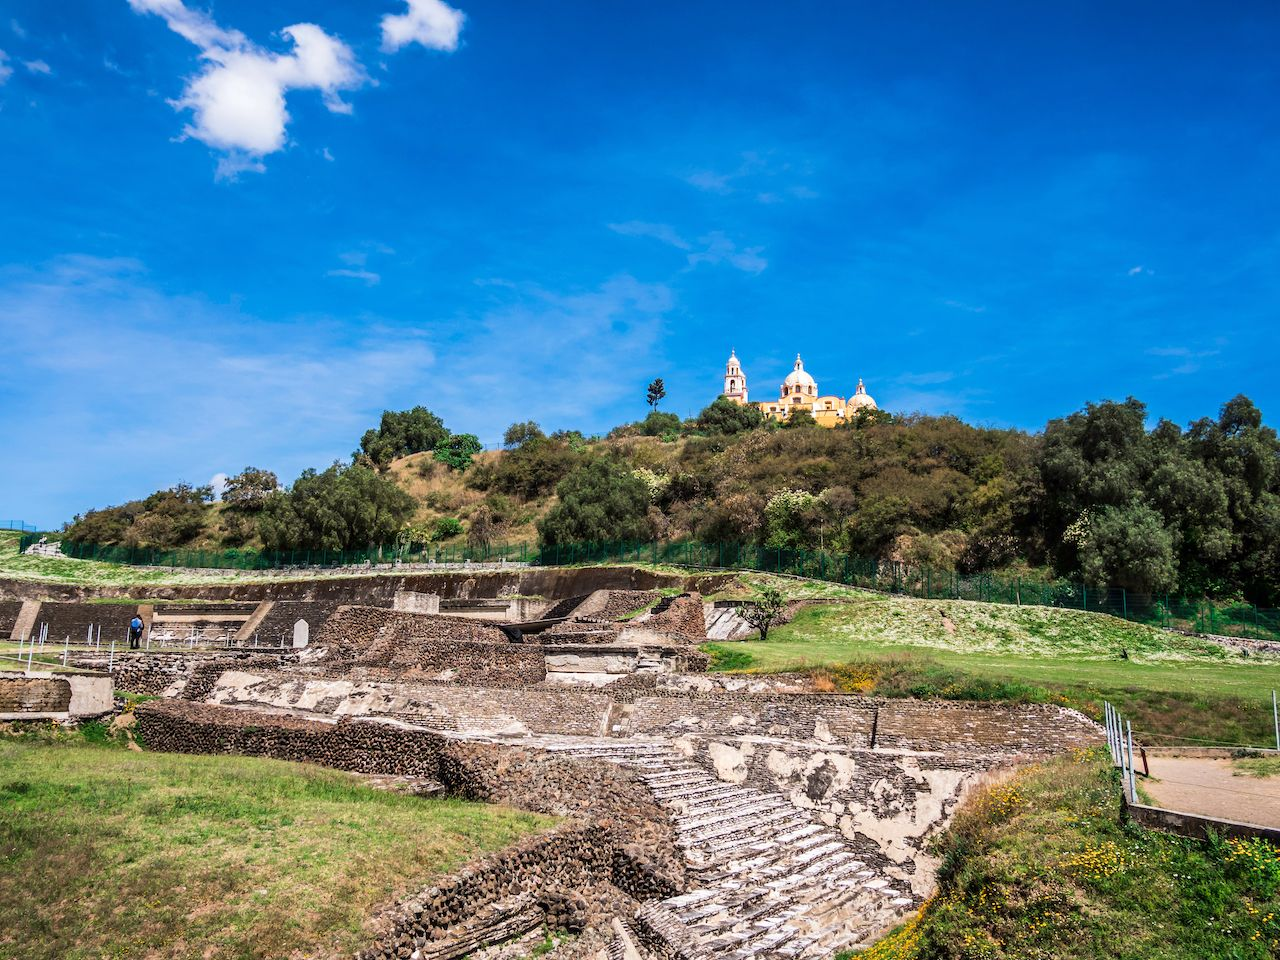 view of the Great Pyramid of Cholula in Mexico